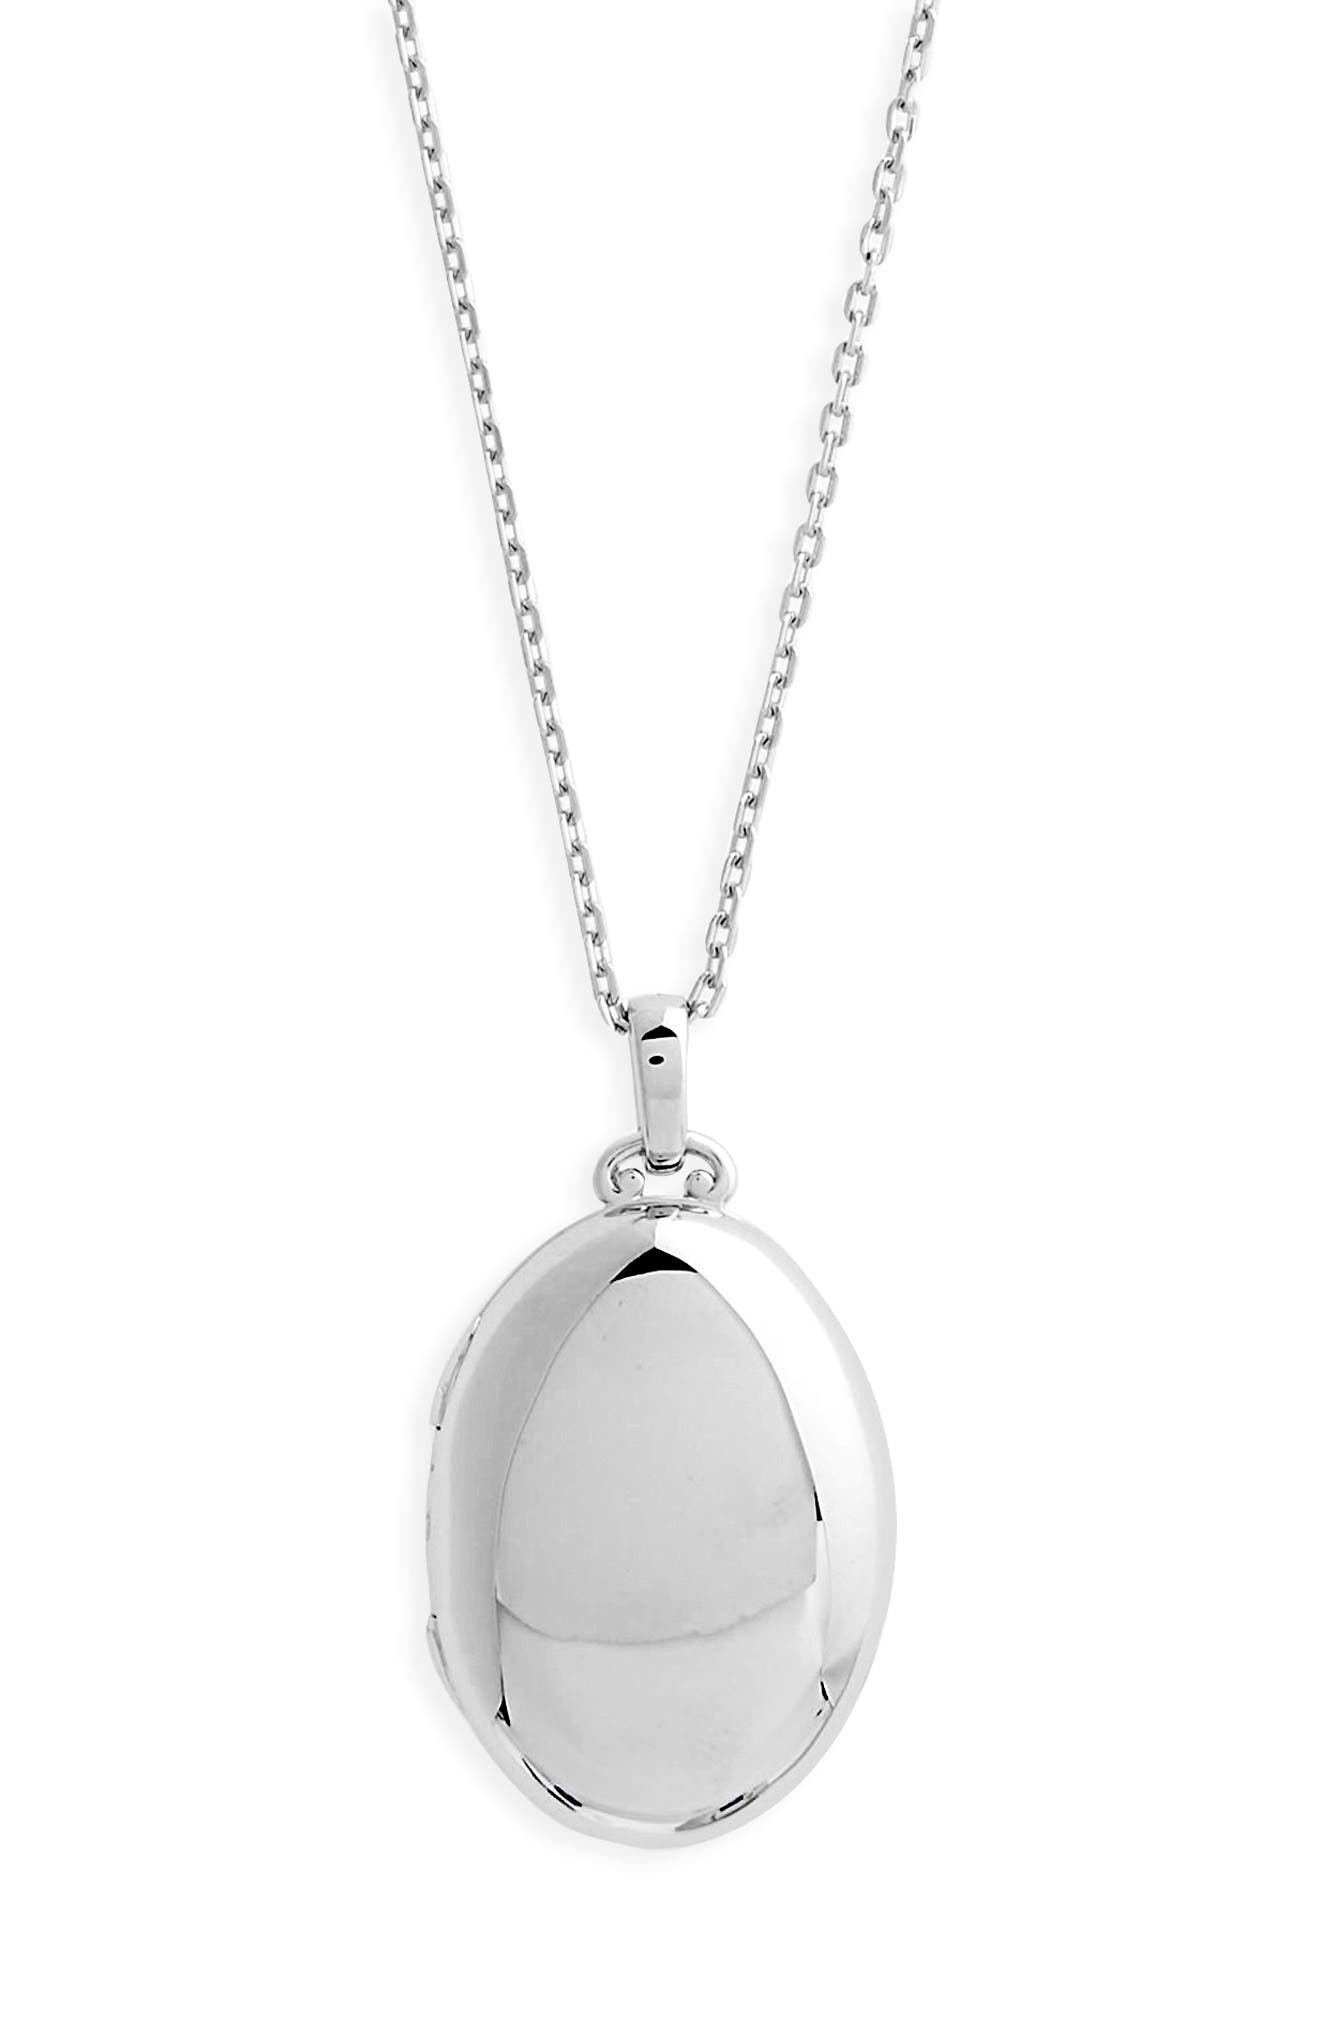 Four Image Mini Locket Necklace,                             Alternate thumbnail 2, color,                             Sterling Silver